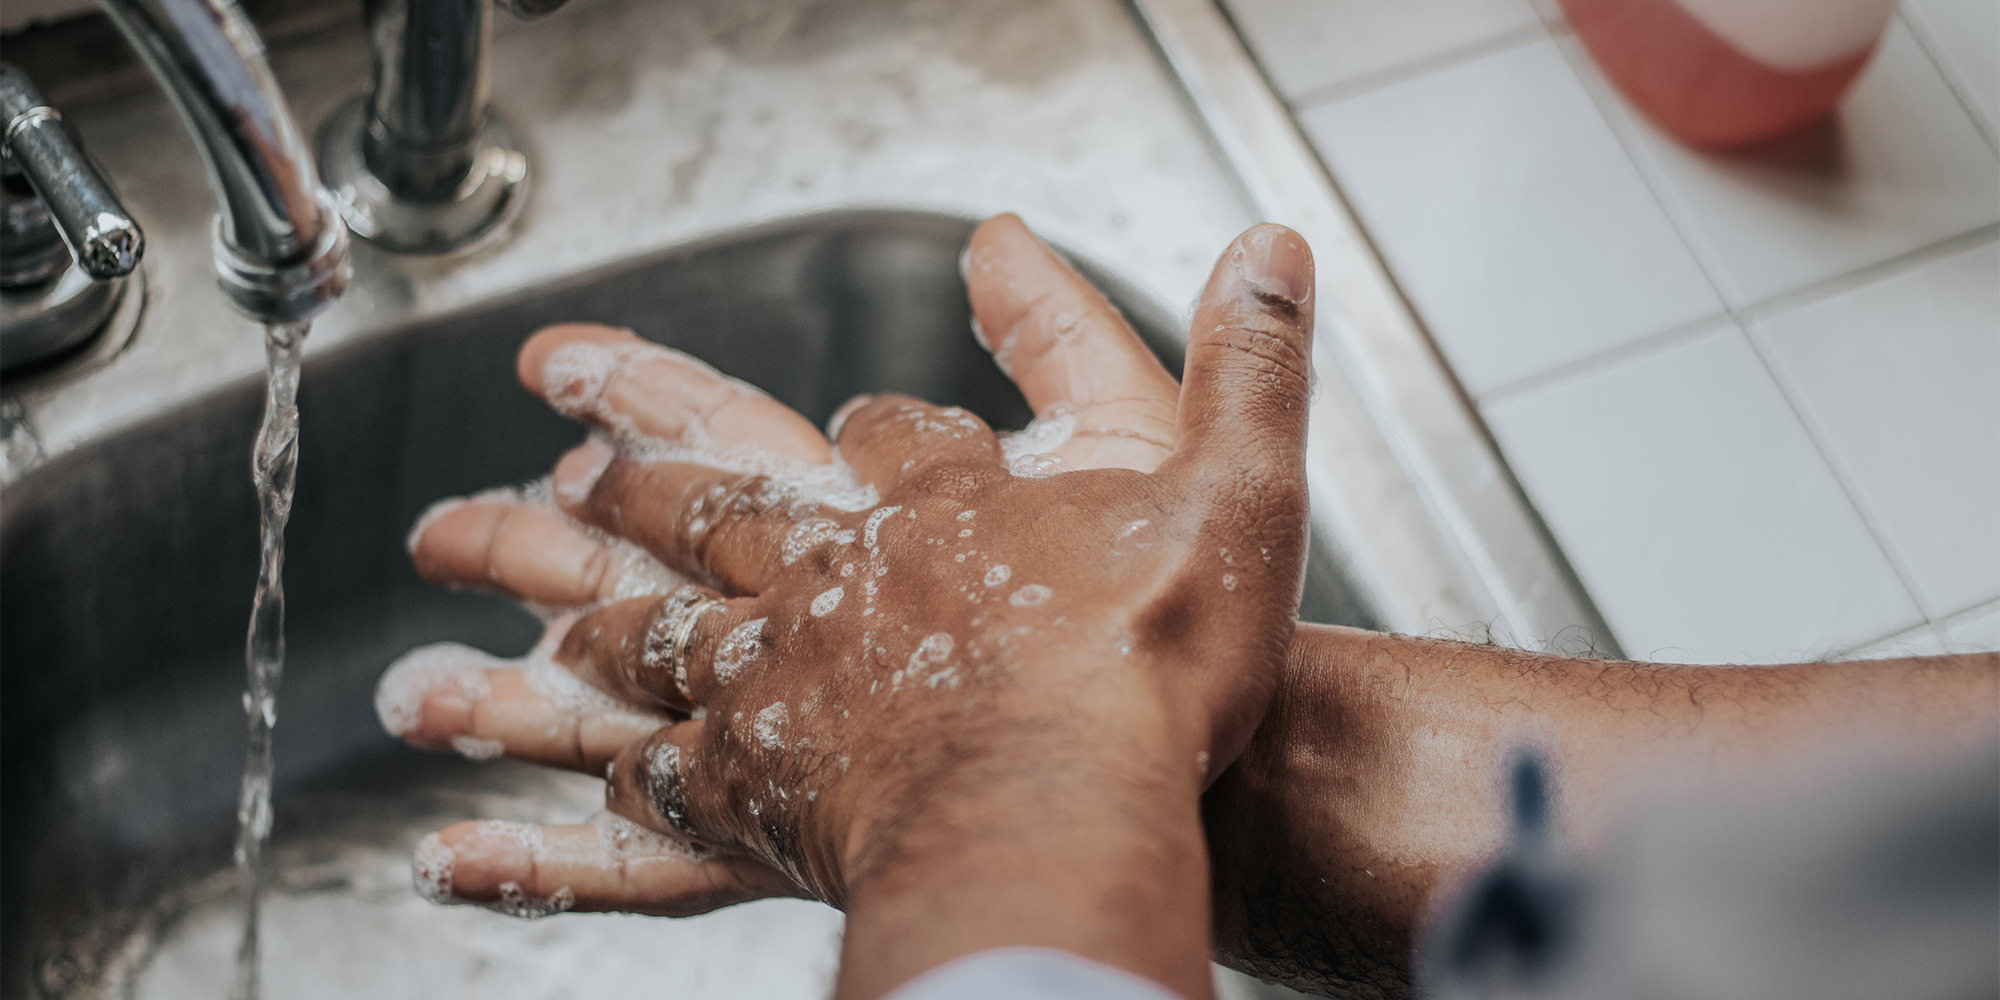 What does hand-washing have to do with risk-taking? New study!